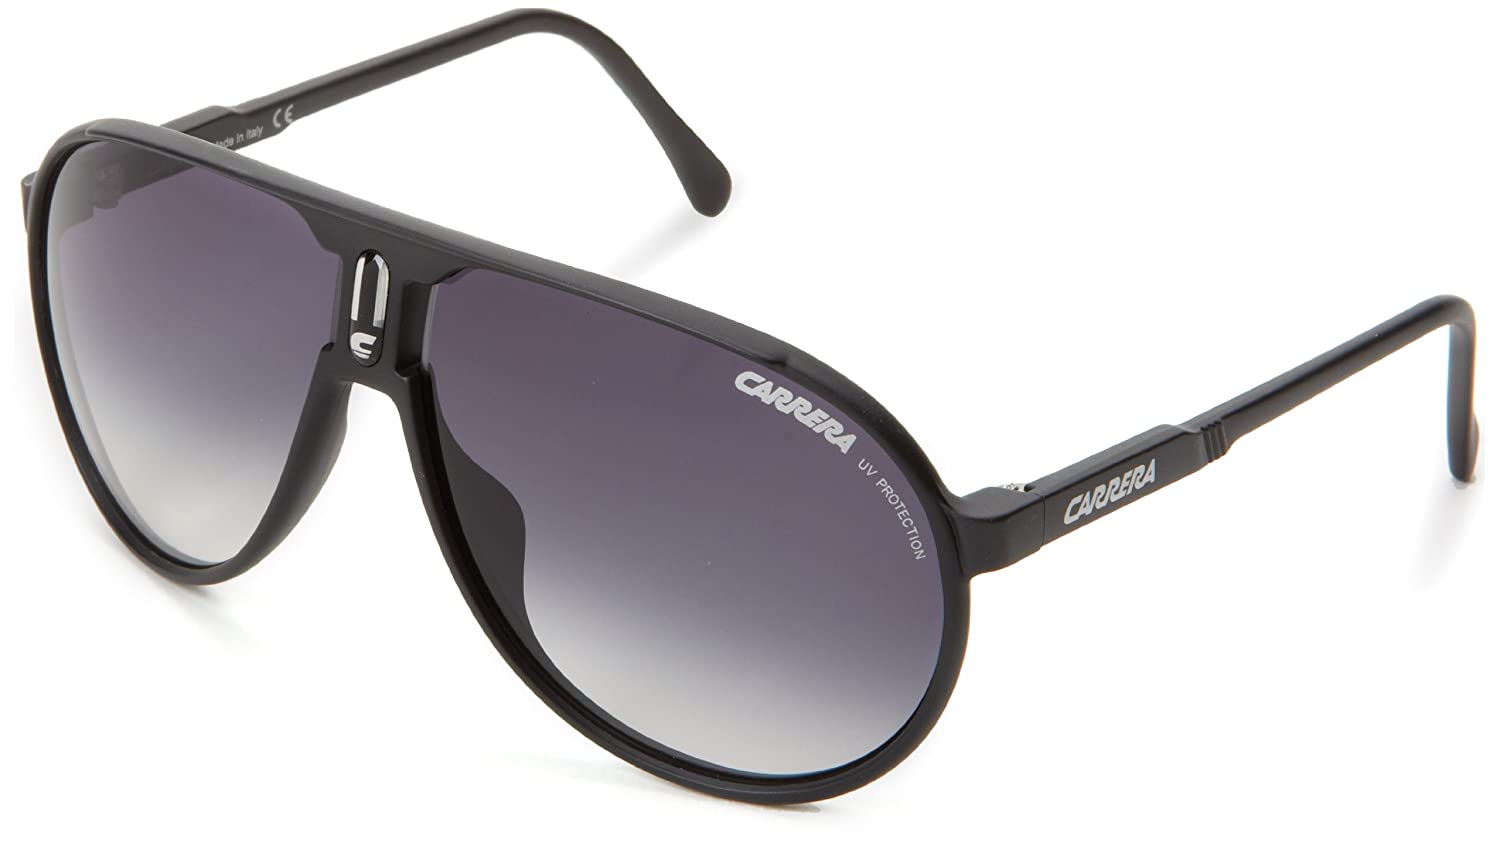 670aac7e135a9 Carrera Champion DL5JJ2 Matte Black Champion Aviator Sunglasses Lens  Category 2  Amazon.co.uk  Clothing